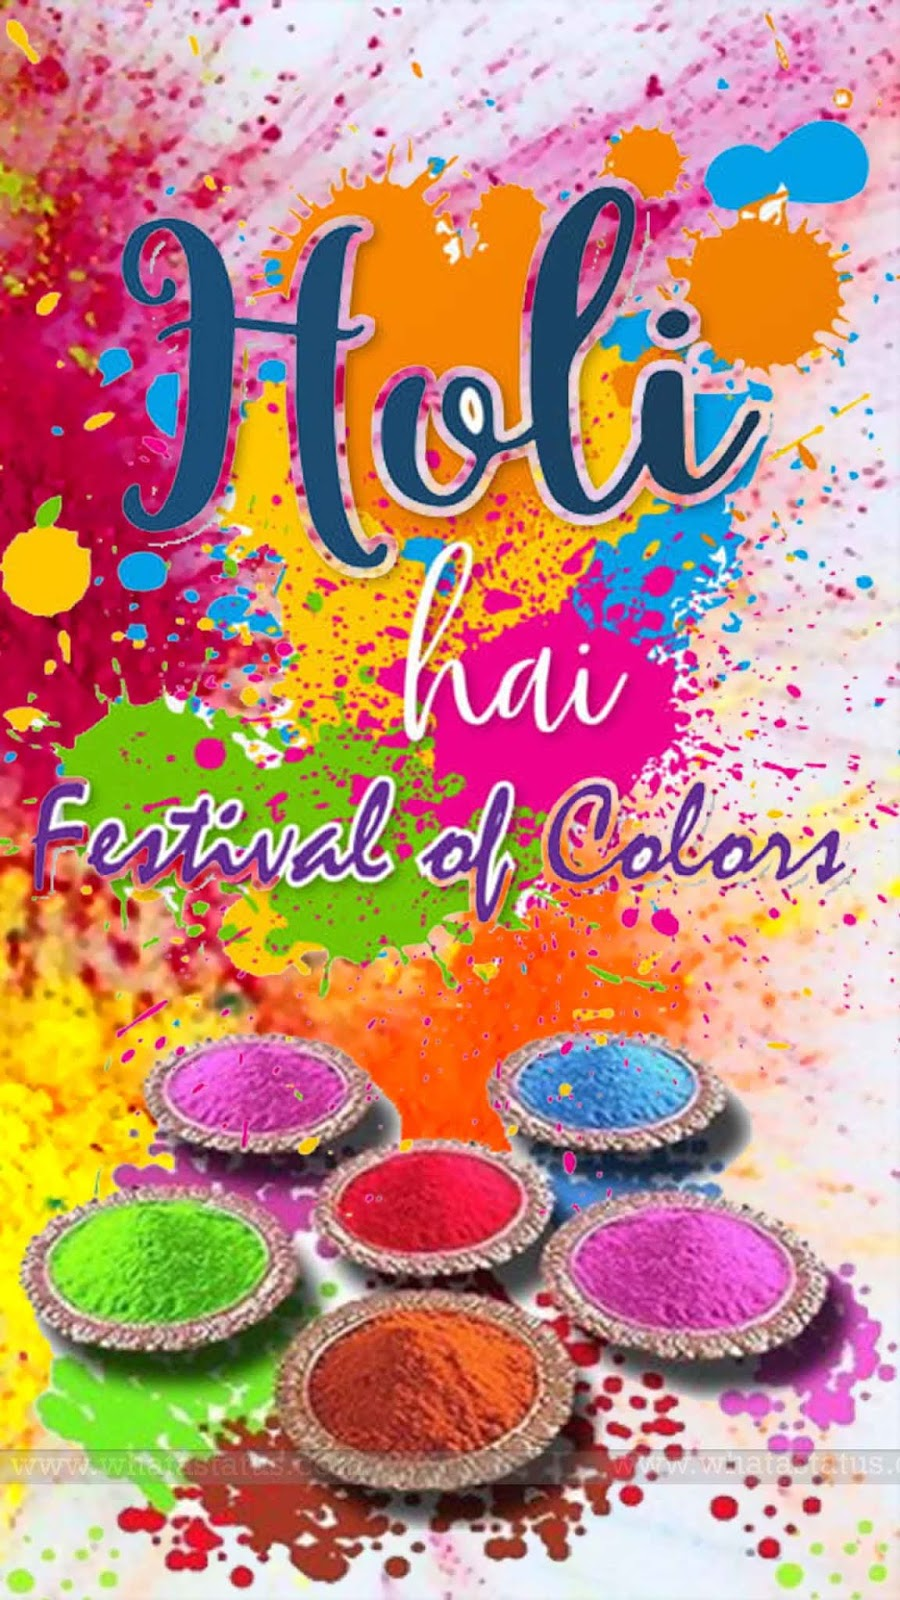 colors-of-festival-holi-pictures